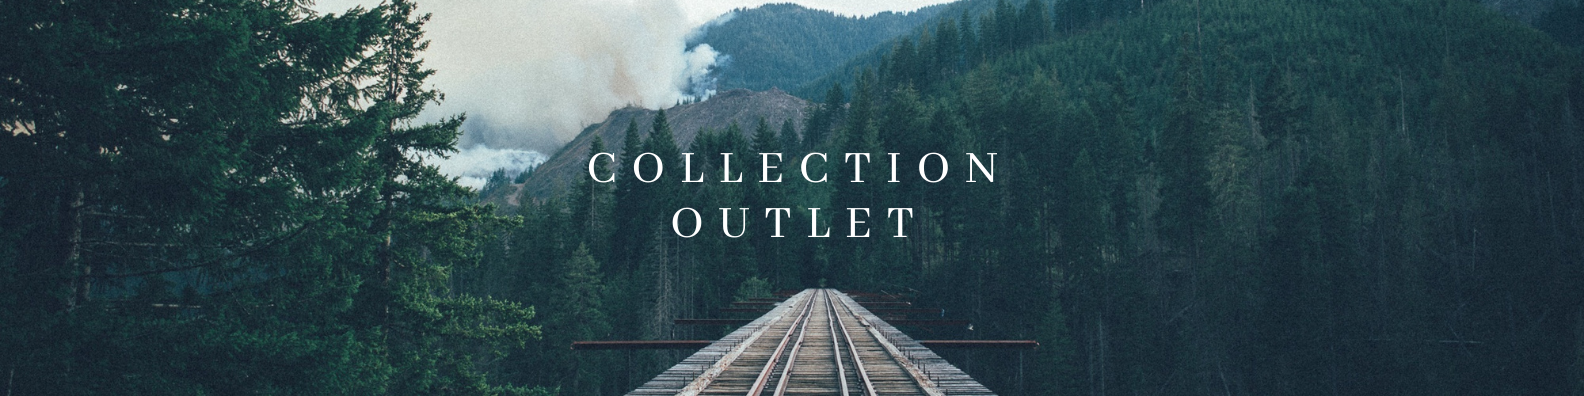 Collection_Outlet.png